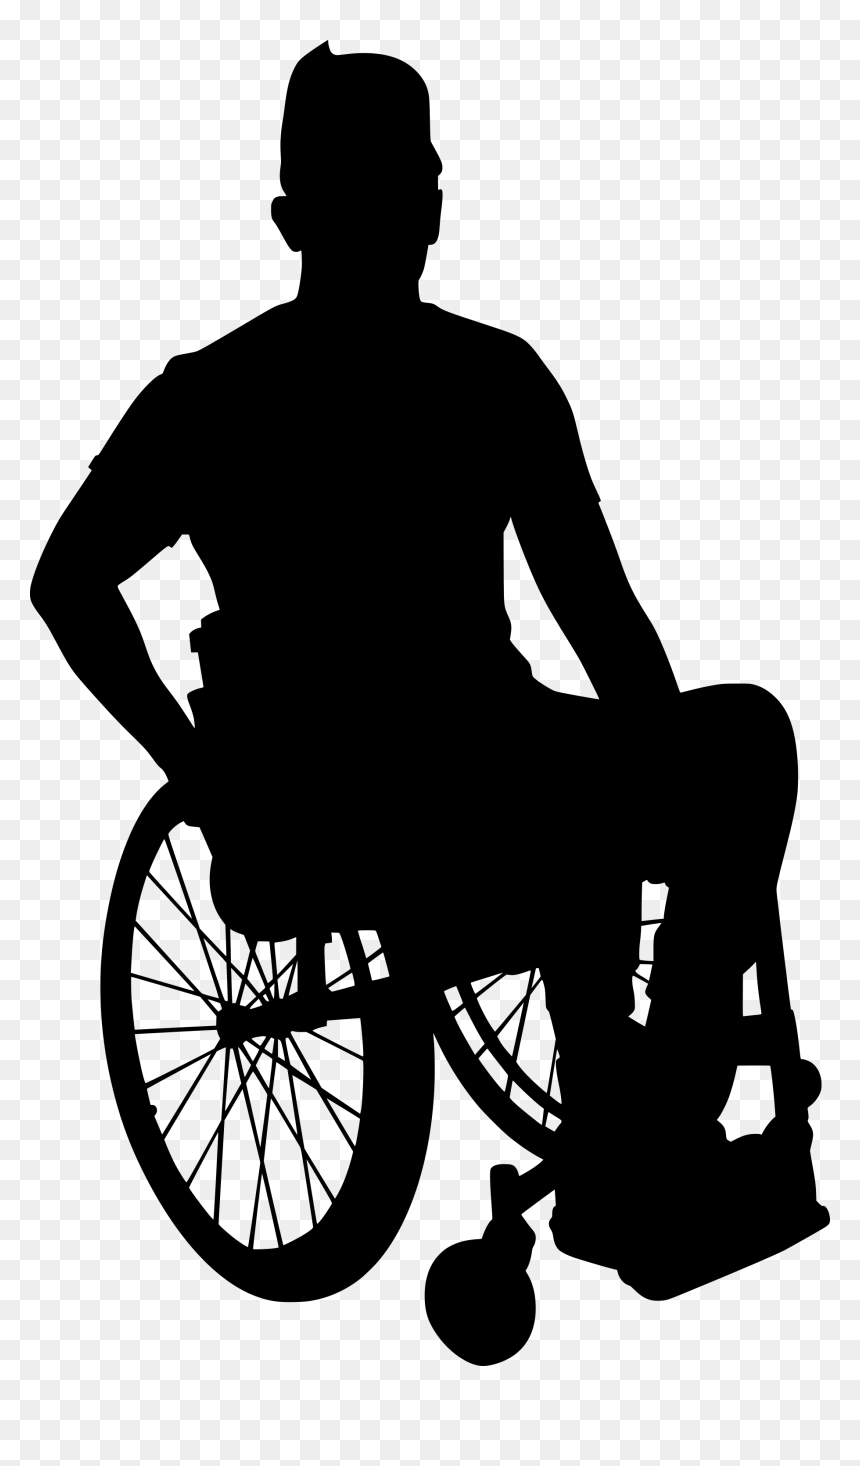 Wheelchair Png Disabled People Silhouette Png Transparent Png Vhv